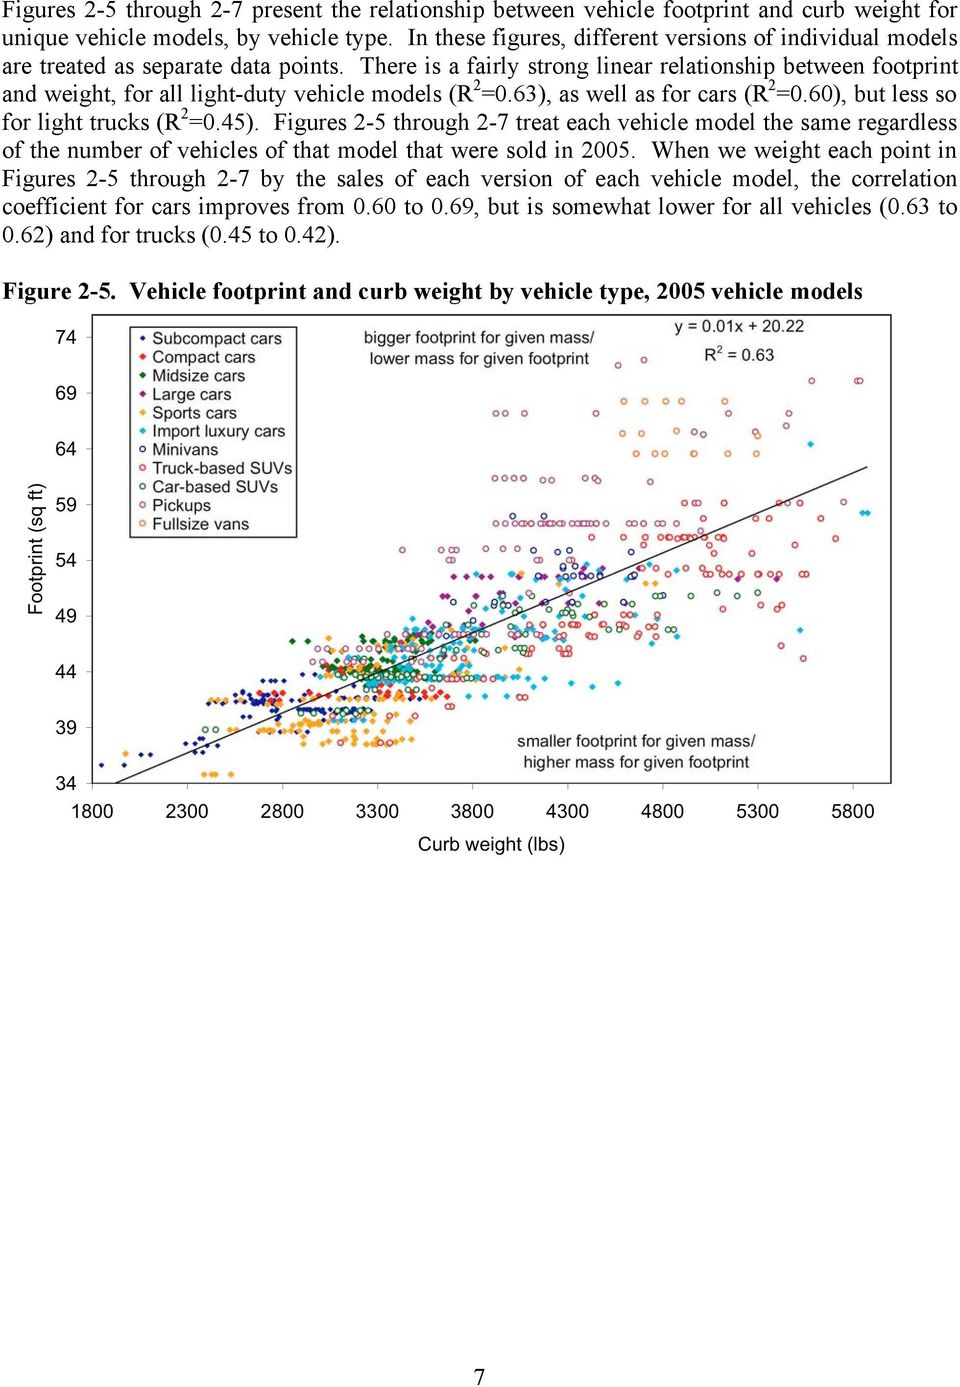 There is a fairly strong linear relationship between footprint and weight, for all light-duty vehicle models (R 2 =0.63), as well as for cars (R 2 =0.60), but less so for light trucks (R 2 =0.45).